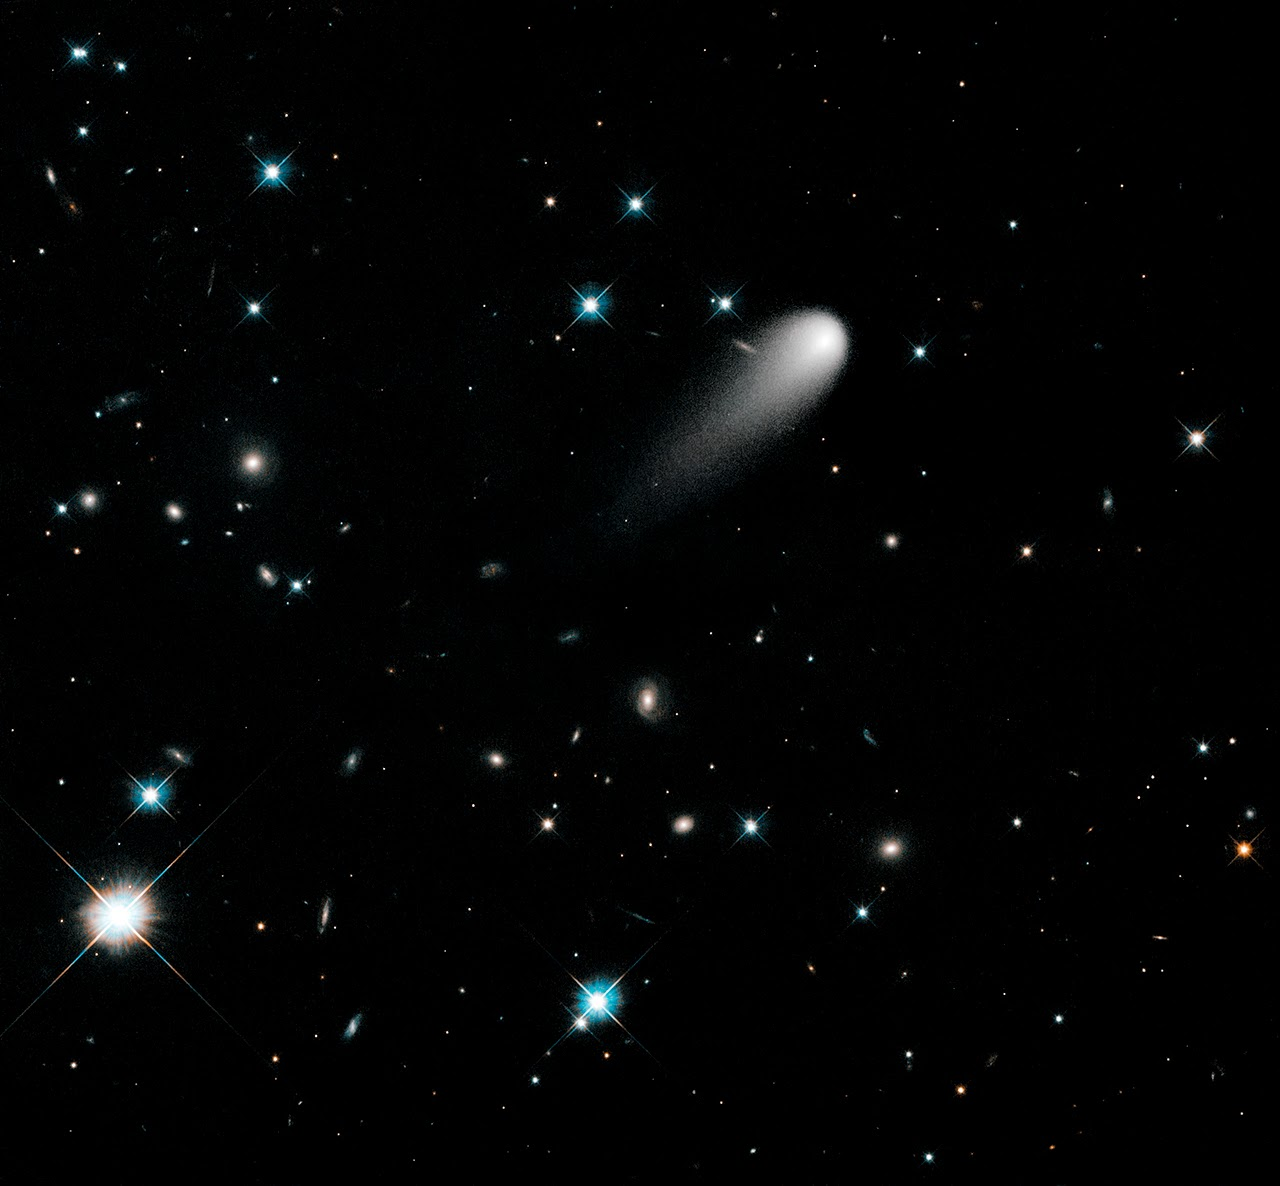 In this Hubble Space Telescope composite image taken in April 2013, the sun-approaching Comet ISON floats against a seemingly infinite backdrop of numerous galaxies and a handful of foreground stars. The icy visitor, with its long gossamer tail, appears to be swimming like a tadpole through a deep pond of celestial wonders.  In this composite image, background stars and galaxies were separately photographed in red and yellow-green light. Because the comet moved between exposures relative to the background objects, its appearance was blurred. The blurred comet photo was replaced with a single, black-and-white exposure.  The images were taken with the Wide Field Camera 3 on April 30, 2013. Credit: NASA, ESA, and the Hubble Heritage Team (STScI/AURA)